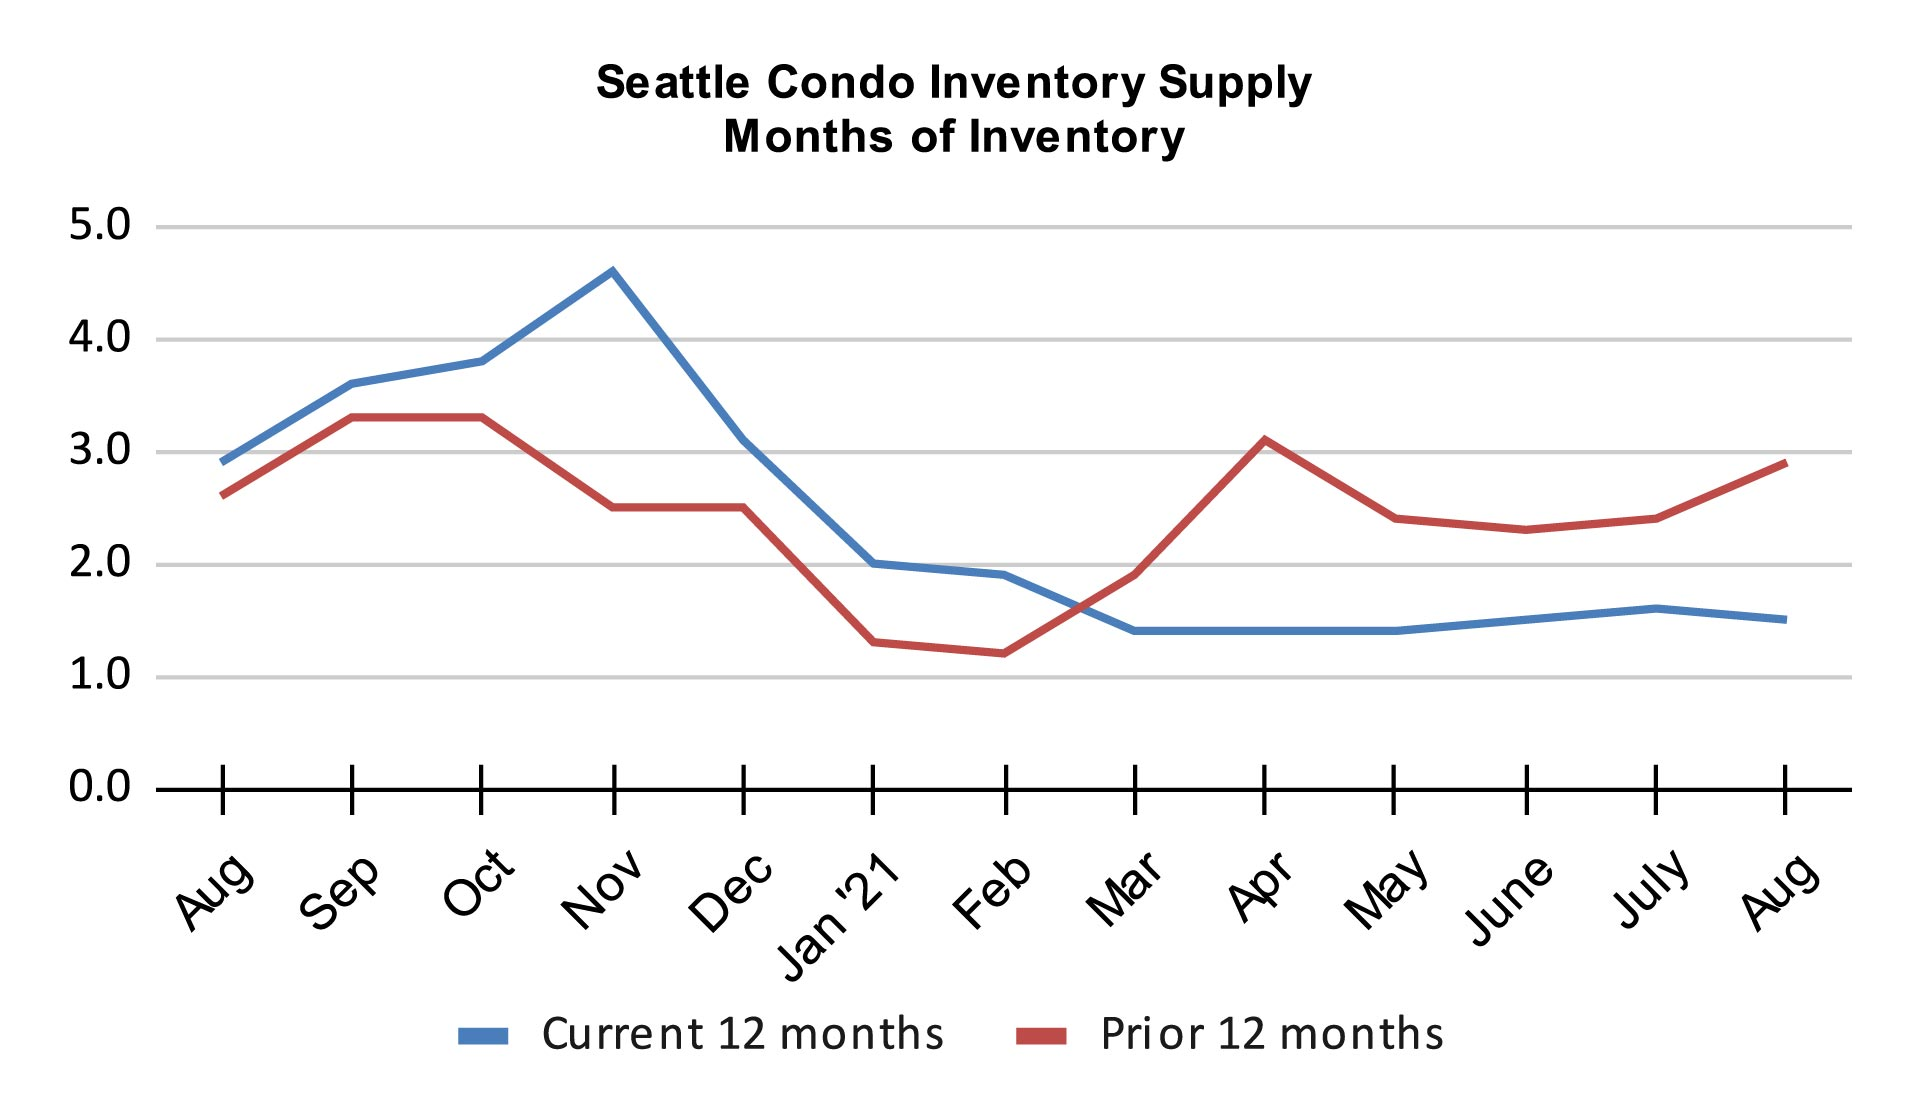 Seattle Condo Inventory Supply Months of Inventory August 2021